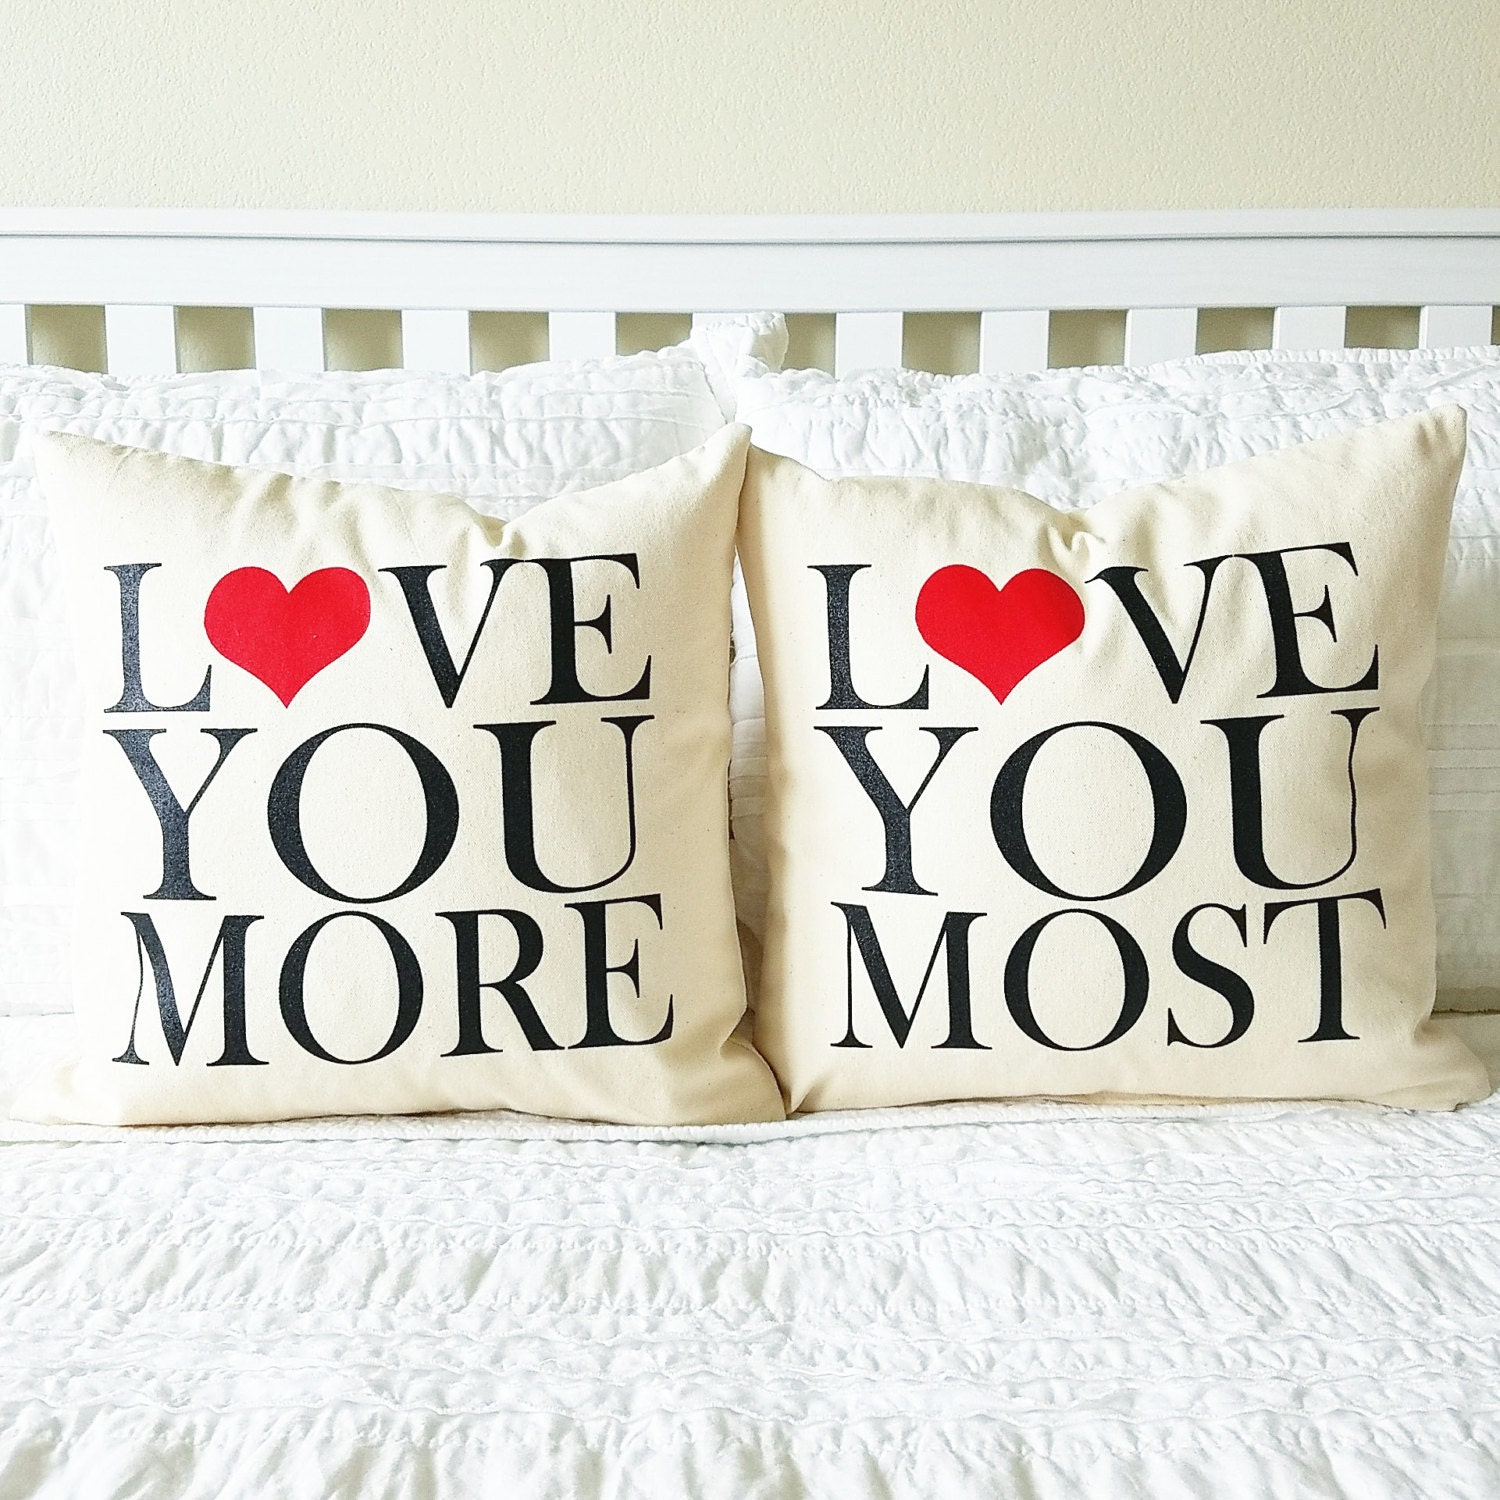 Tangled Love You More Most Pillows Mother 39 S Day Gift